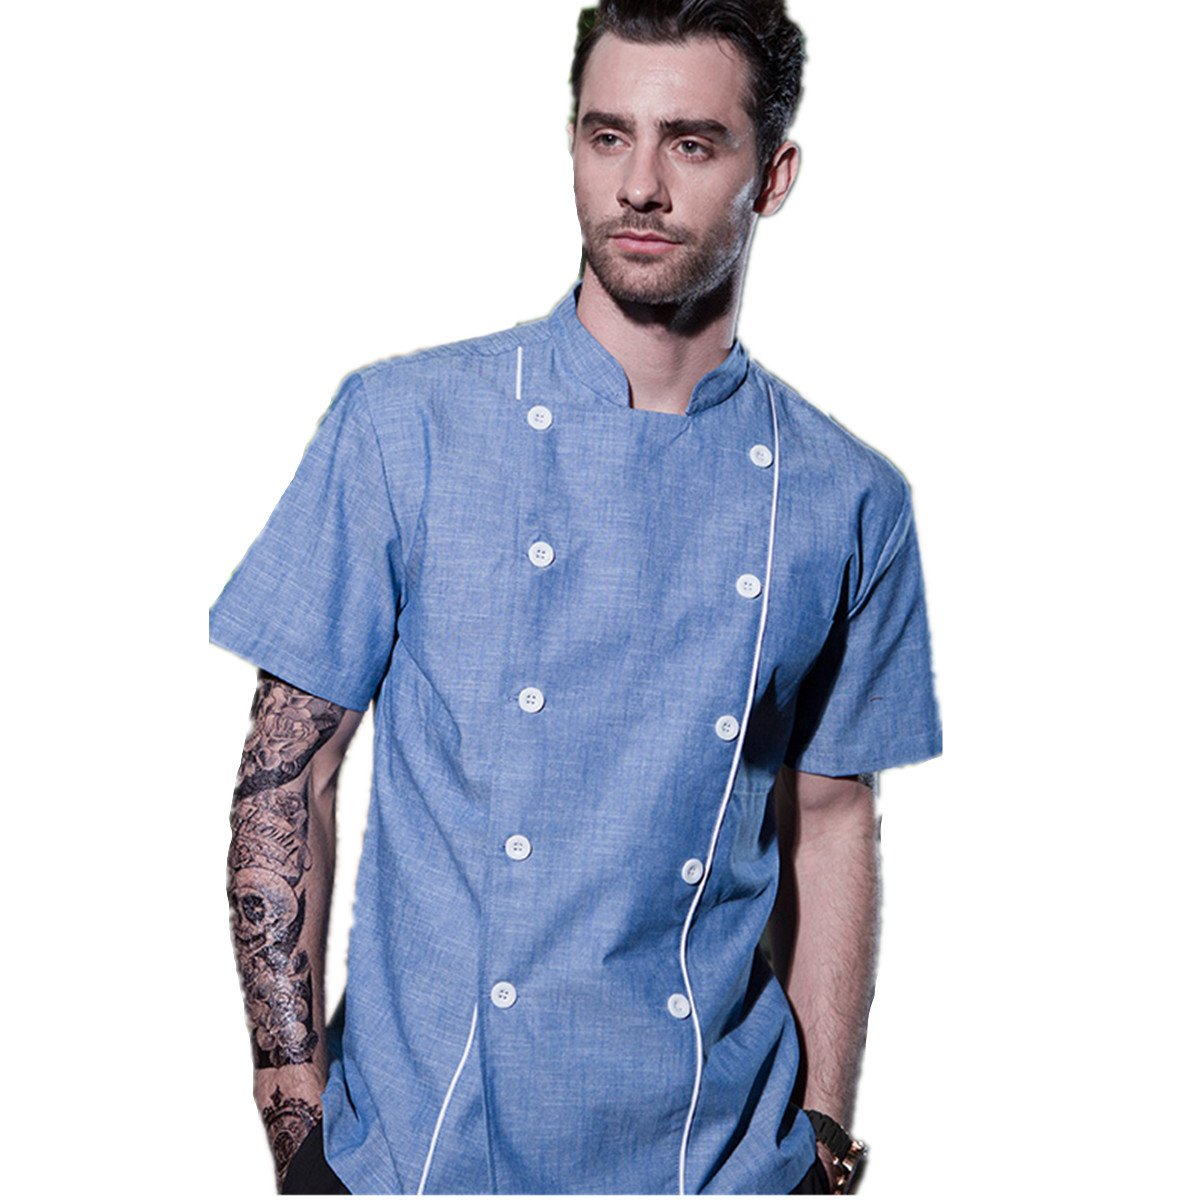 XINFU Men's and Women's Chef Jacket Service Short-Sleeved 10 Button Chef Coat